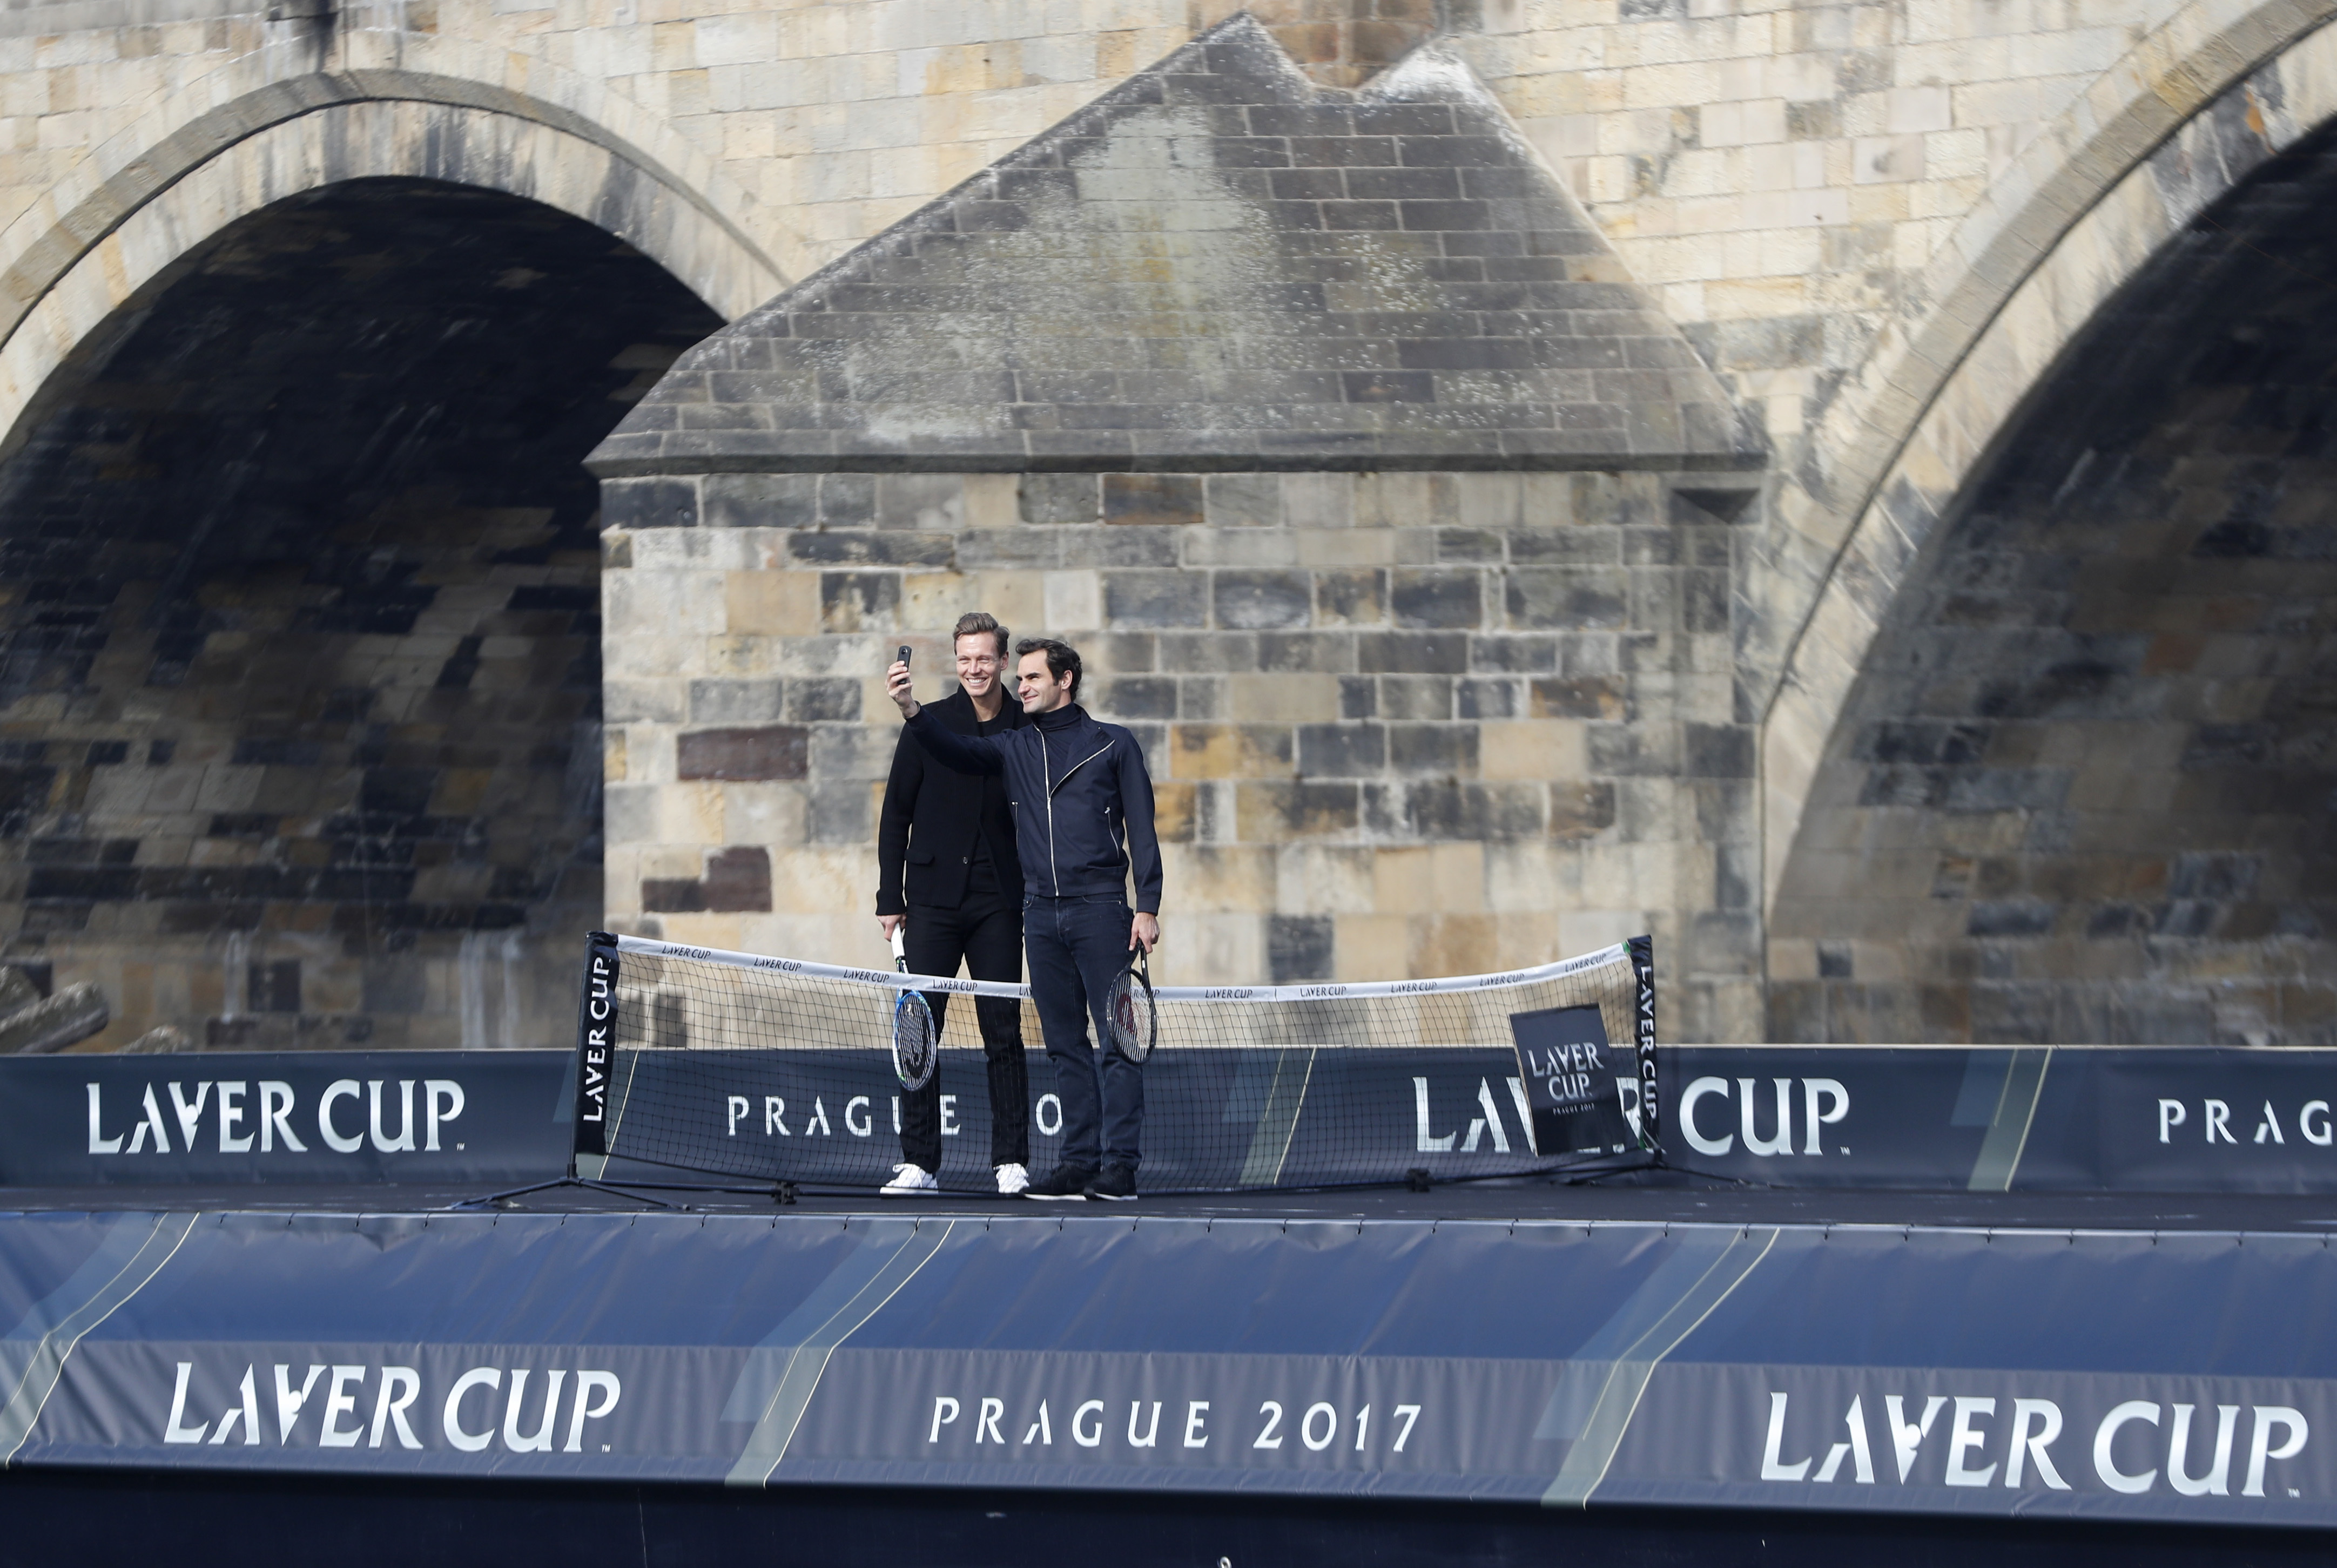 Switzerland's tennis player Roger Federer, right, and Czech Republic's Tomas Berdych, left, pose for a photo during a exhibition match on Vltava river in Prague, Czech Republic, Monday, Feb. 20, 2017. Federer arrived in Prague to promote the Laver Cup, a